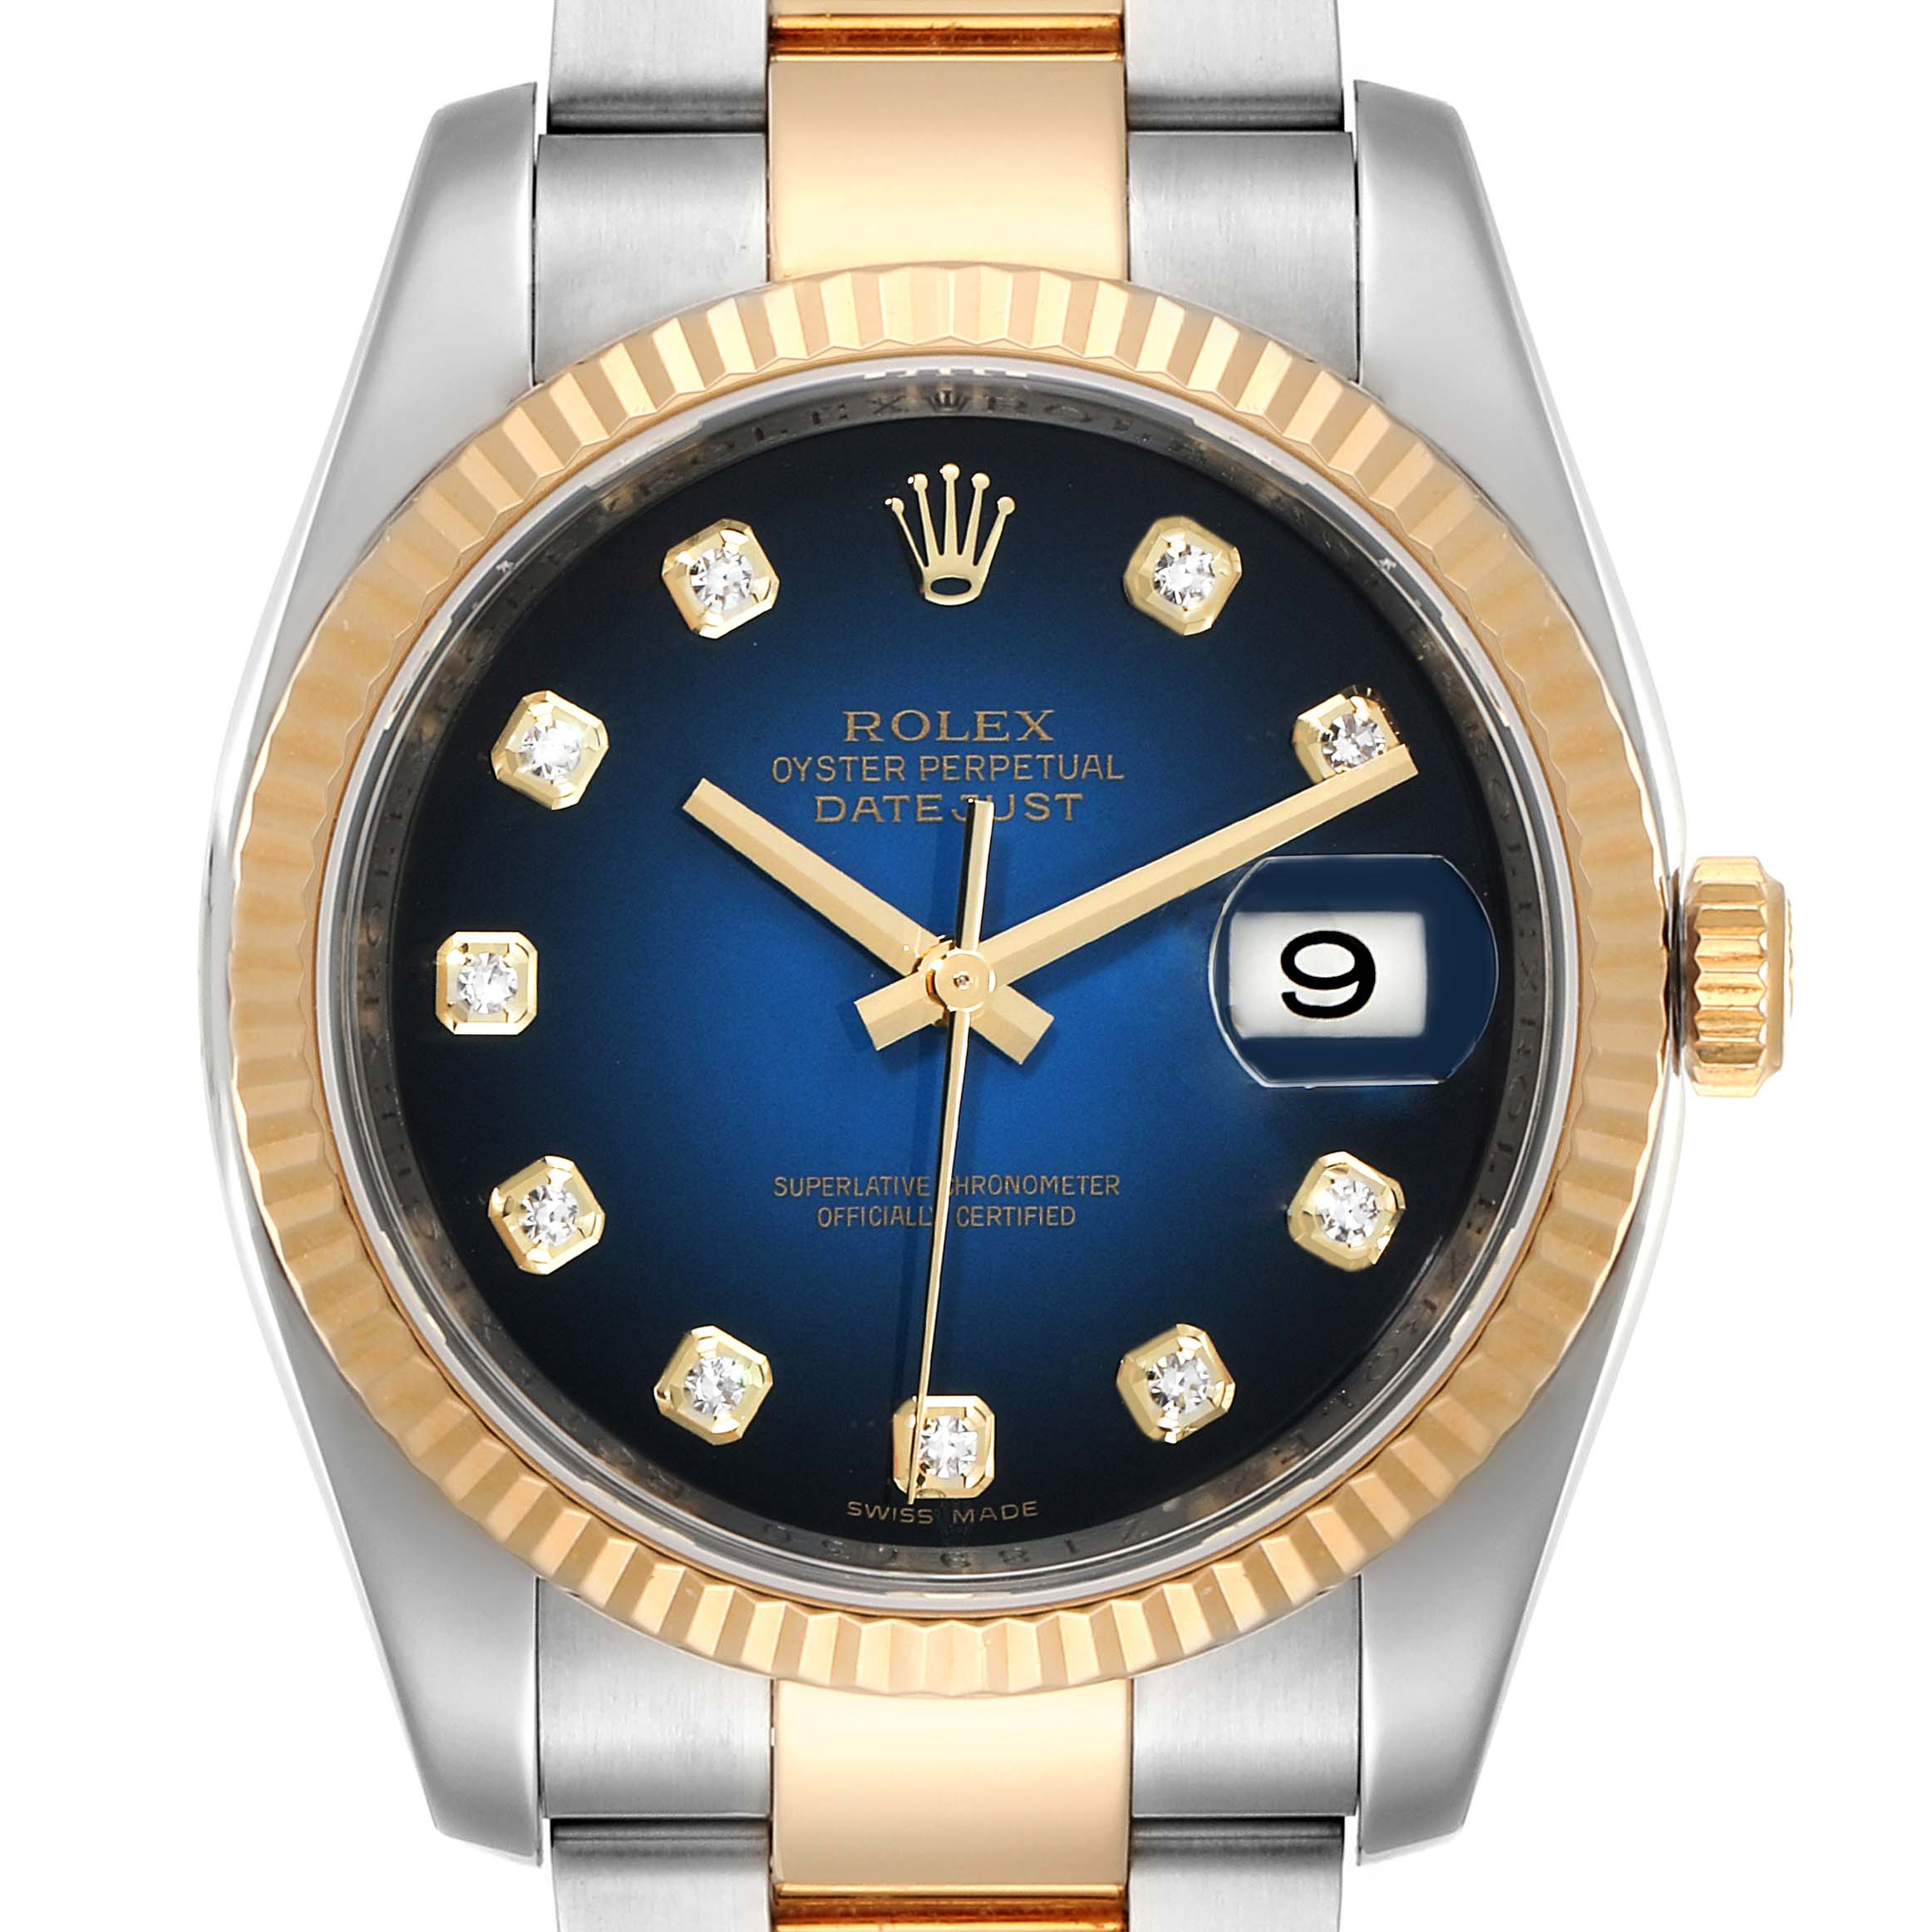 Photo of Rolex Datejust Steel Yellow Gold Blue Vignette Diamond Dial Watch 116233